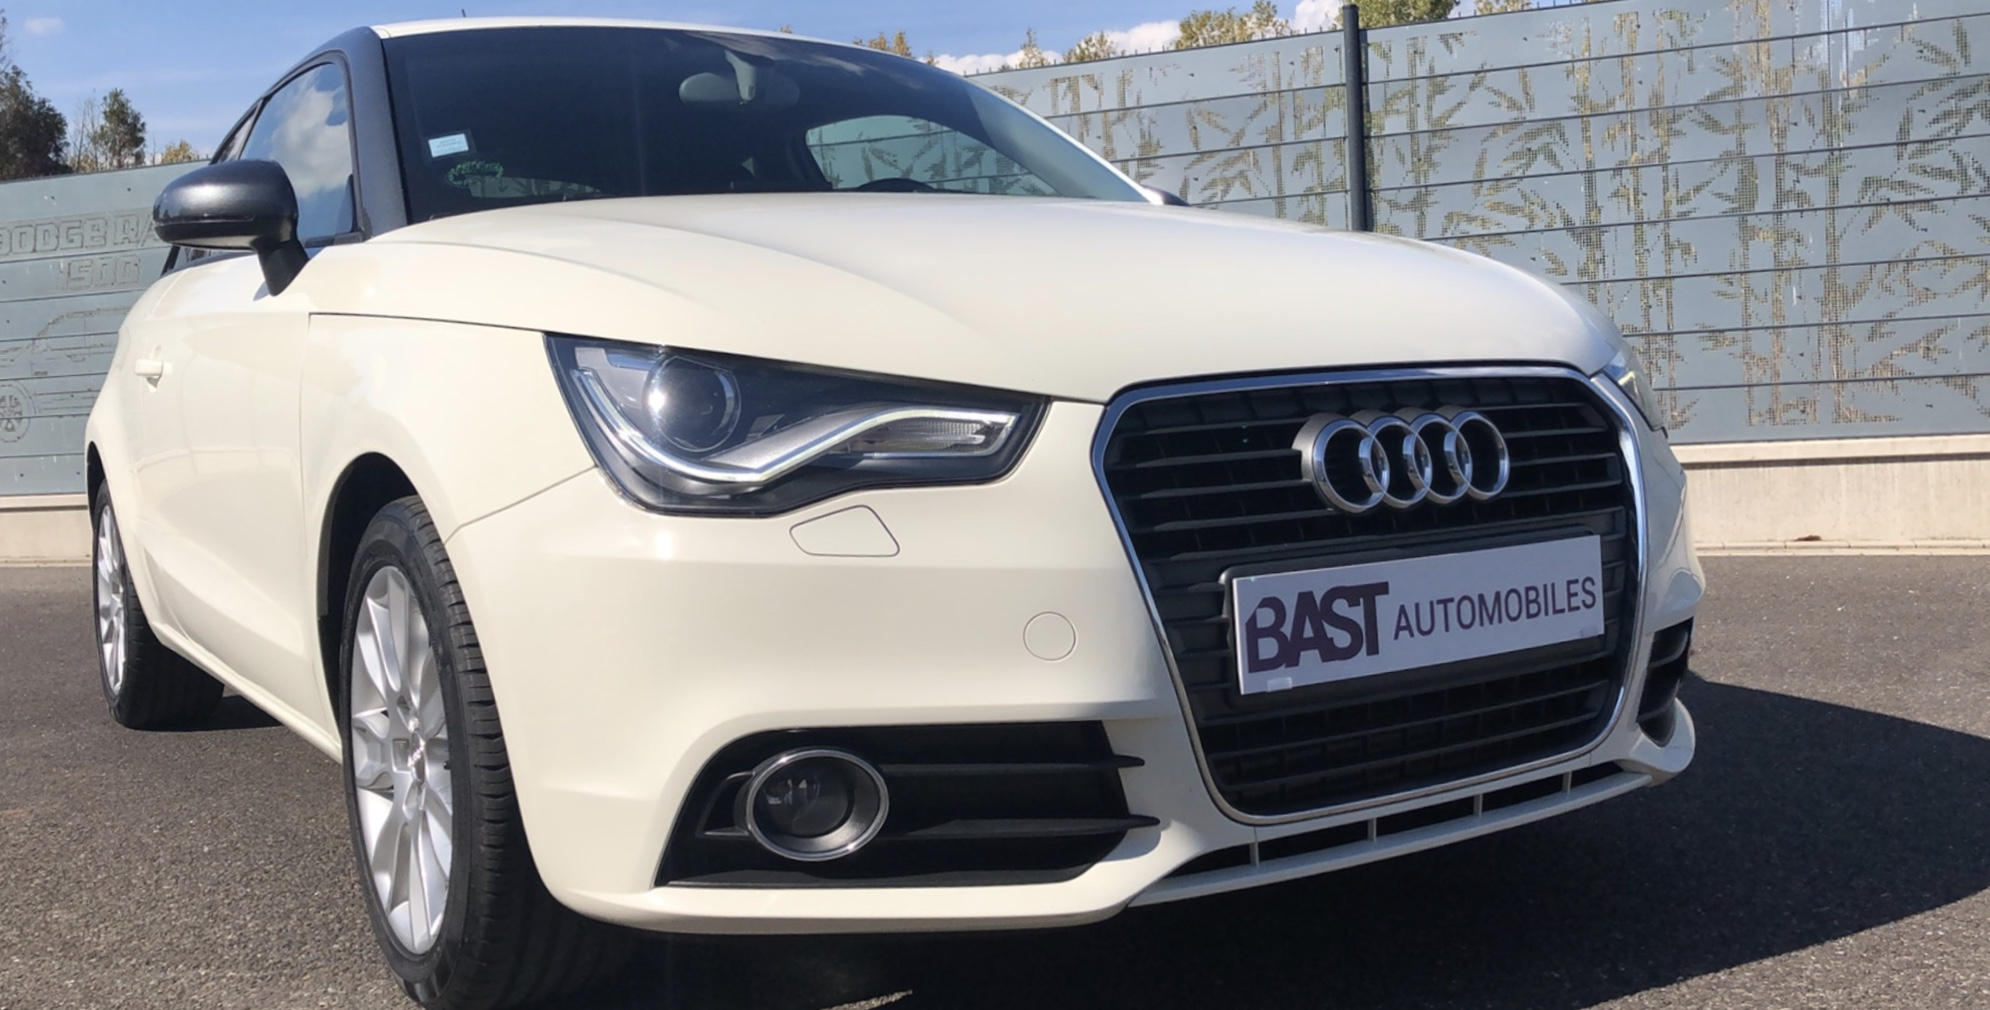 Audi A1 1.6 TDI Blanc Ambition Luxe Image